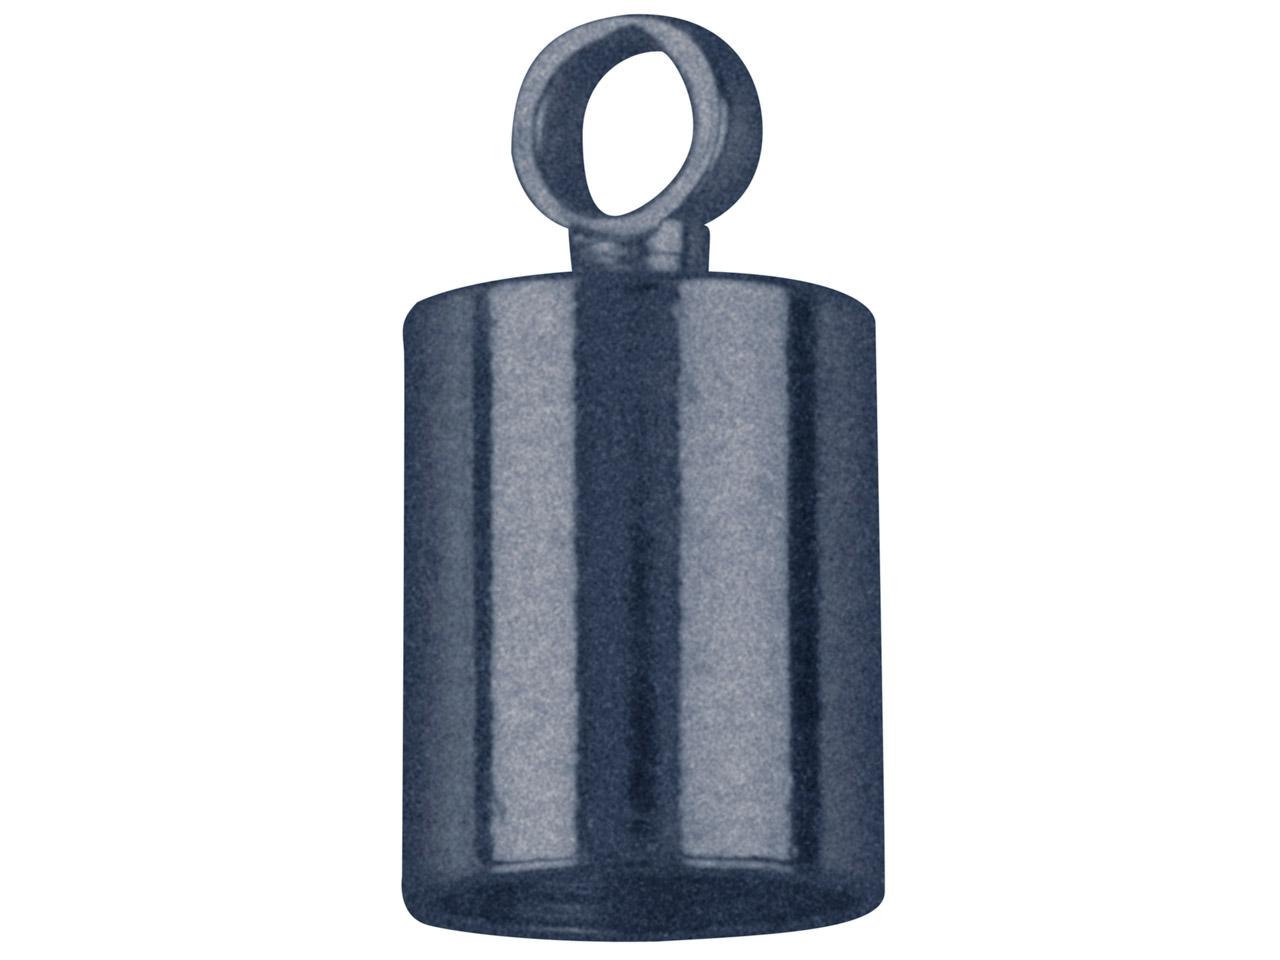 Antique Black Chain End Caps 5mm   Pack of 10